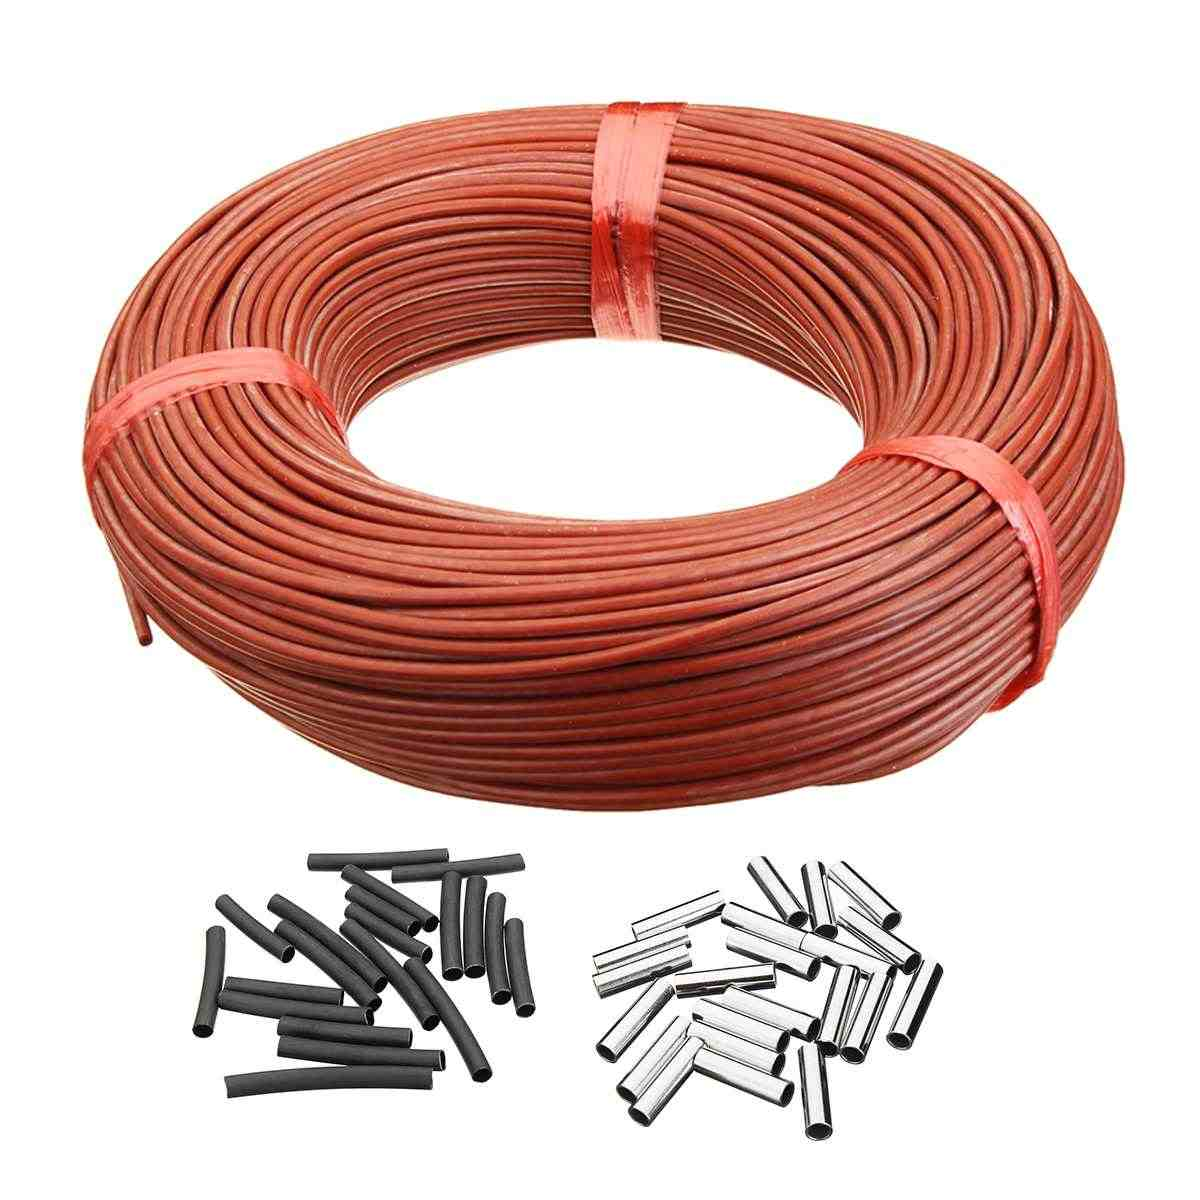 New 100M Heating Cable Warm Heater Wire Greenhouse Vegetables Farm Heating Equipment Home Floor warm 12k Carbon fiber heating wi